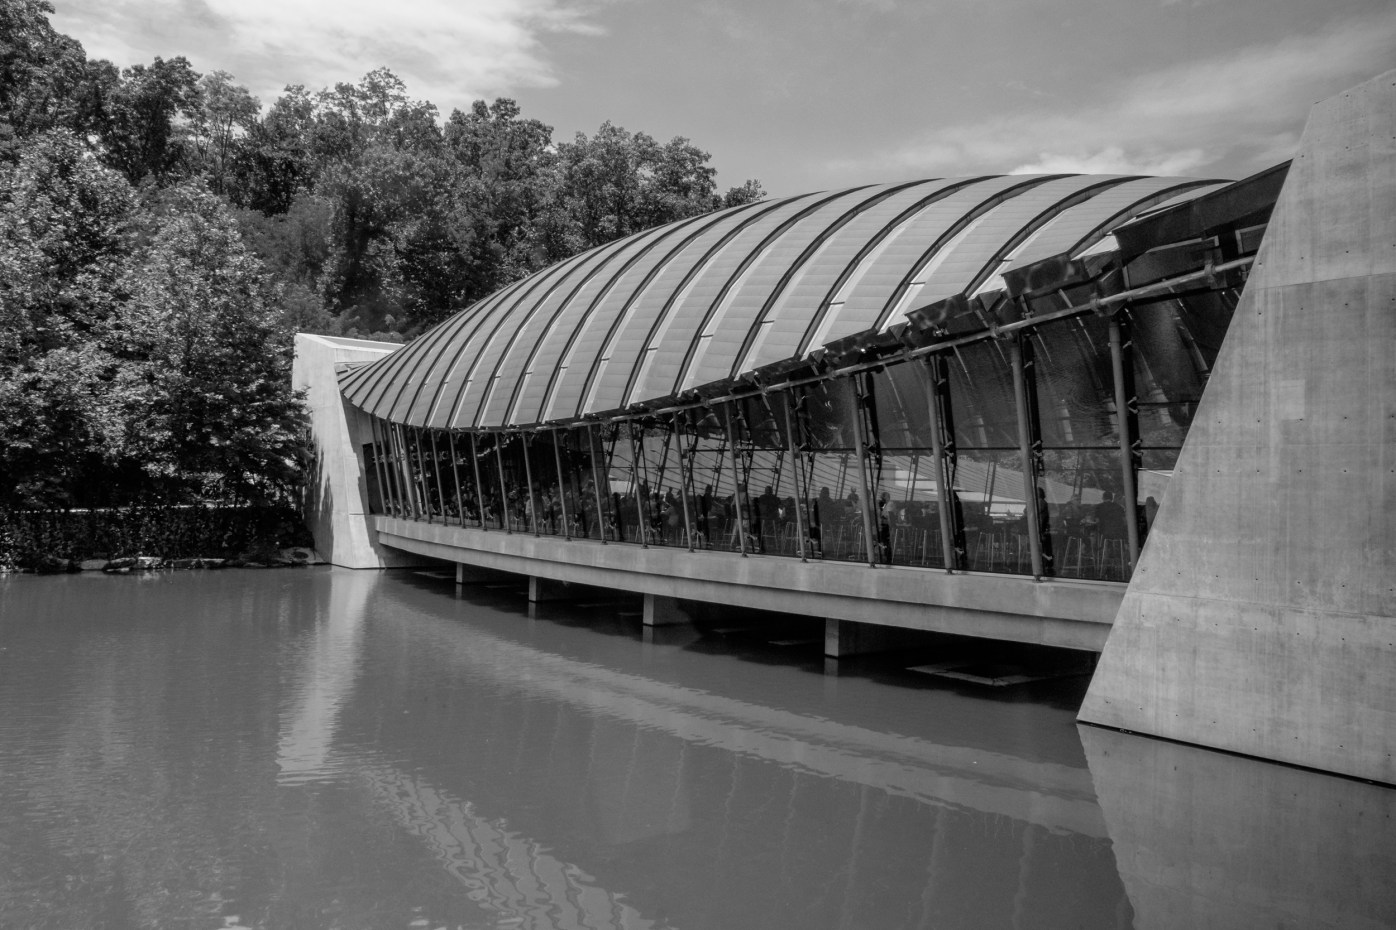 Black and White photograph. Architecture - Crystal Bridges Museum of American Art